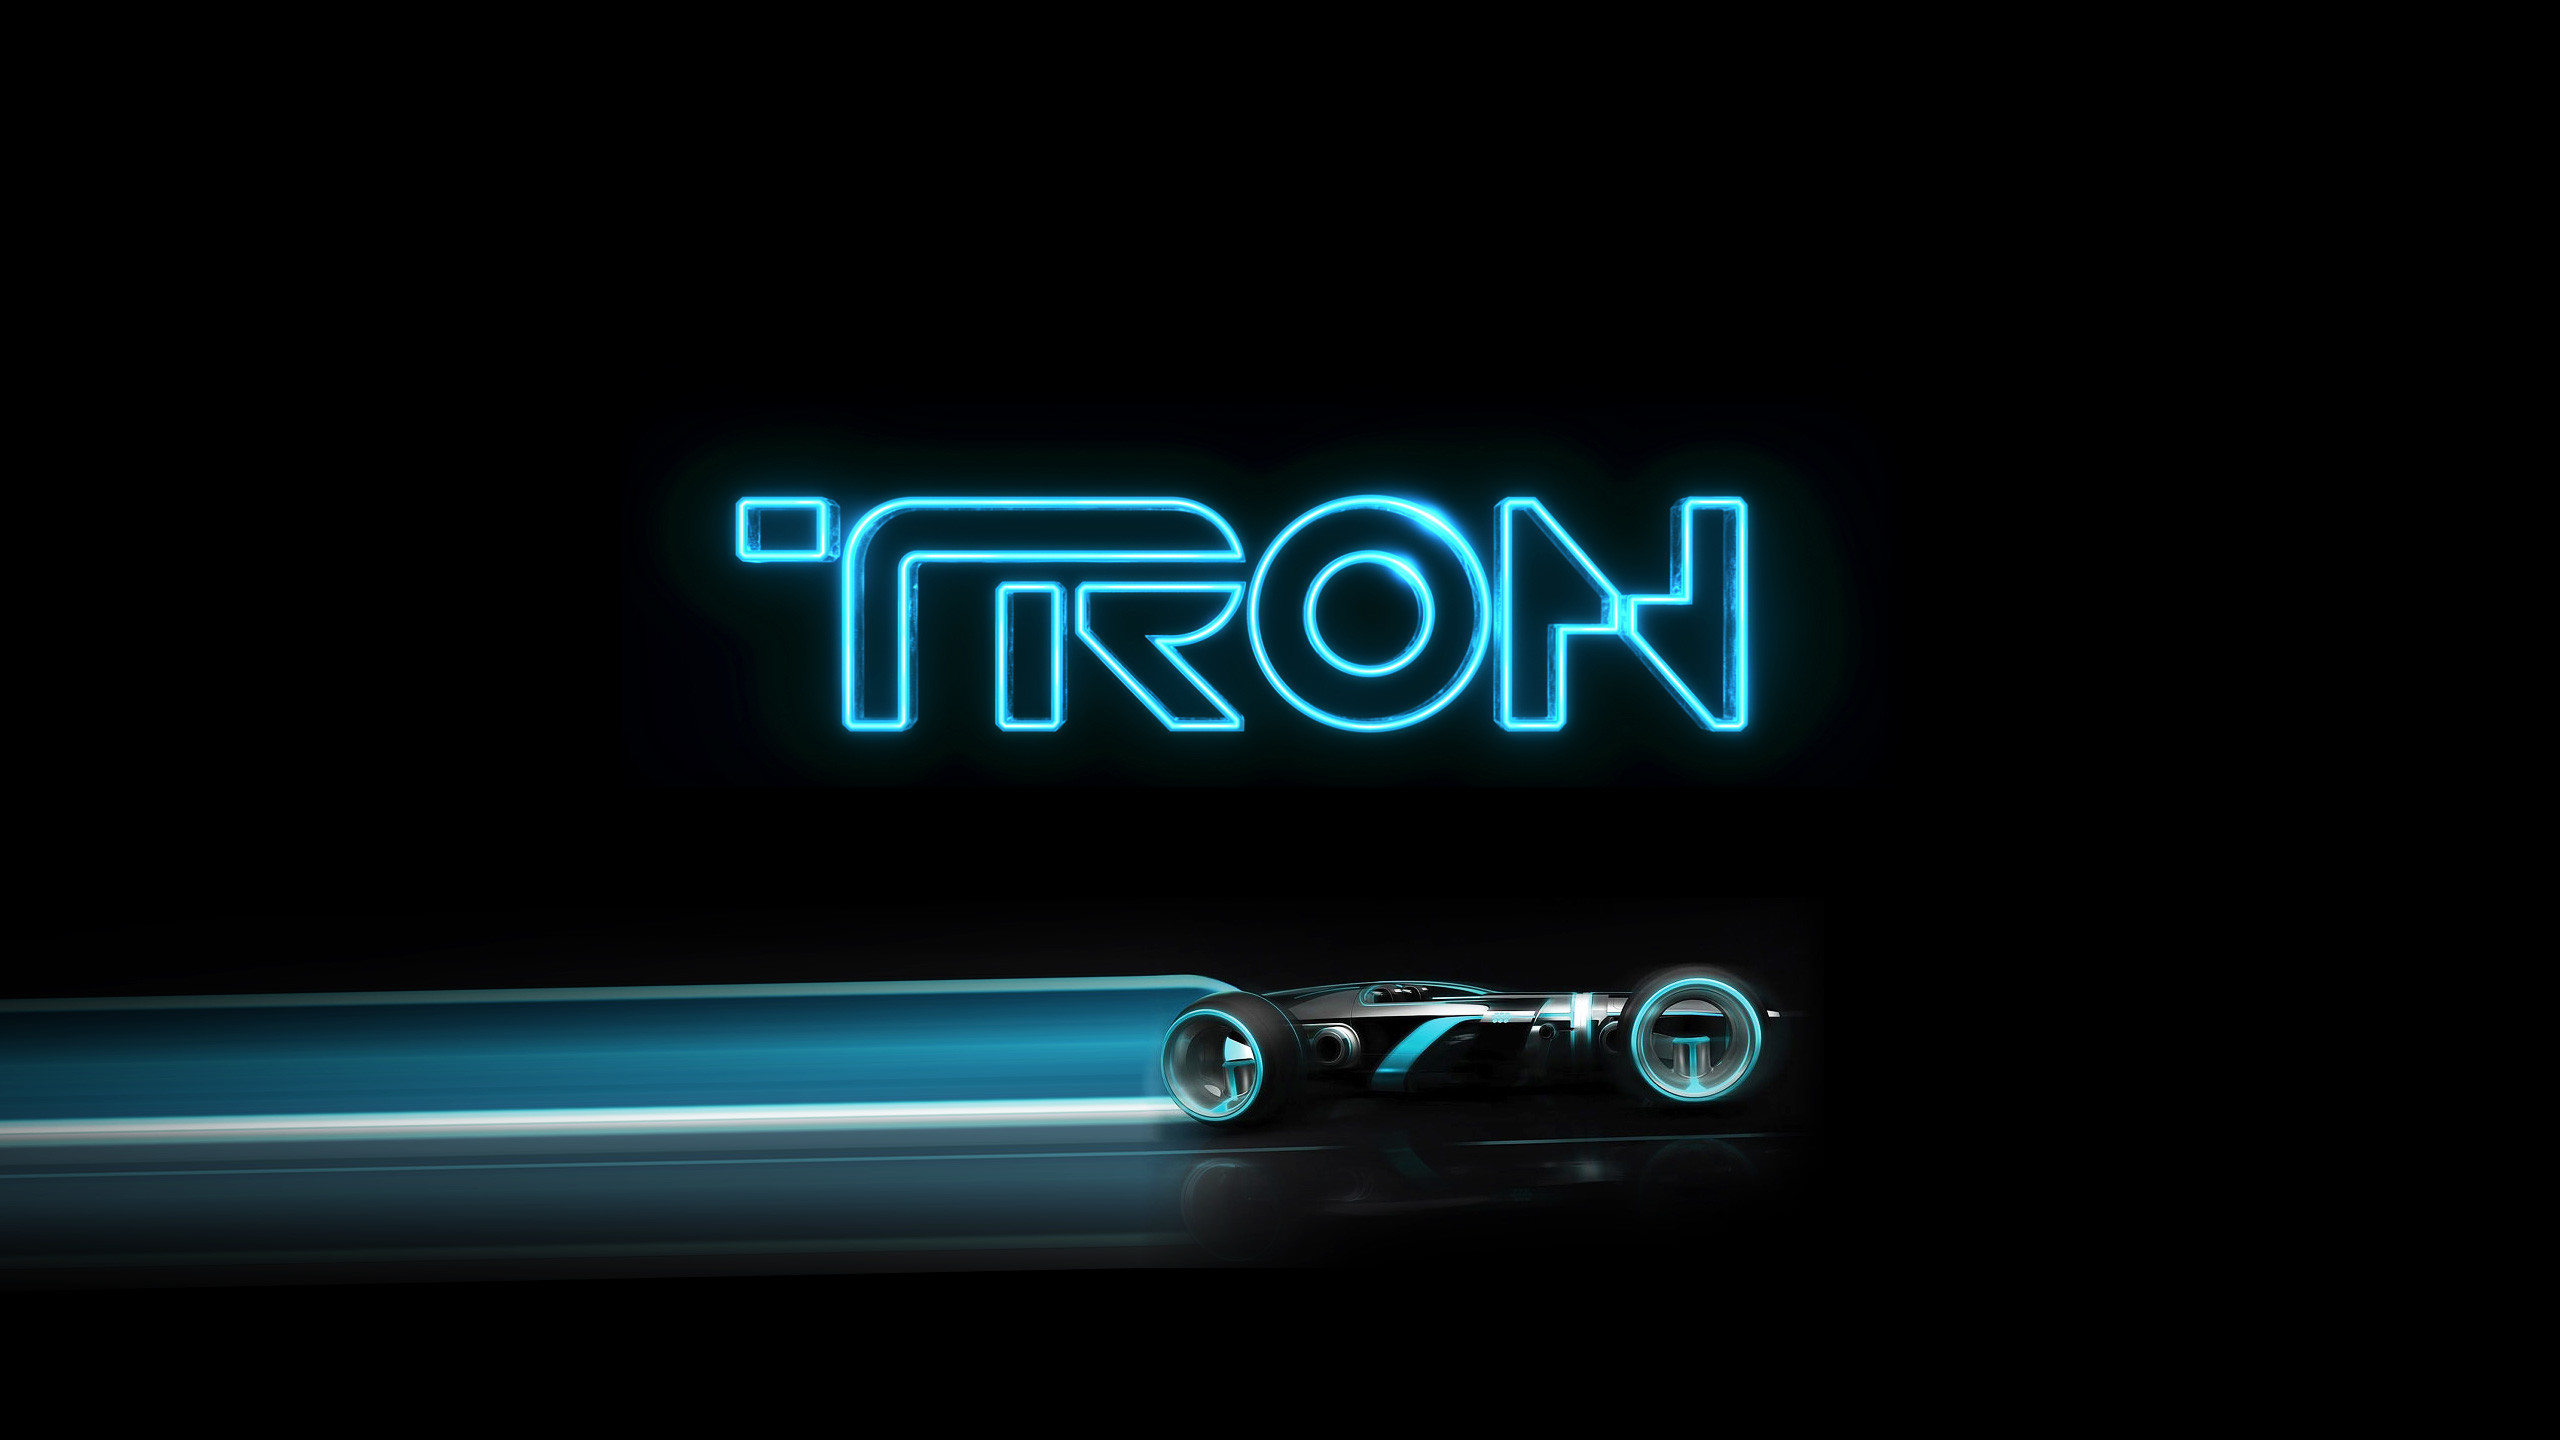 2560x1440 tron wallpapers widescreen hd. Â«Â«